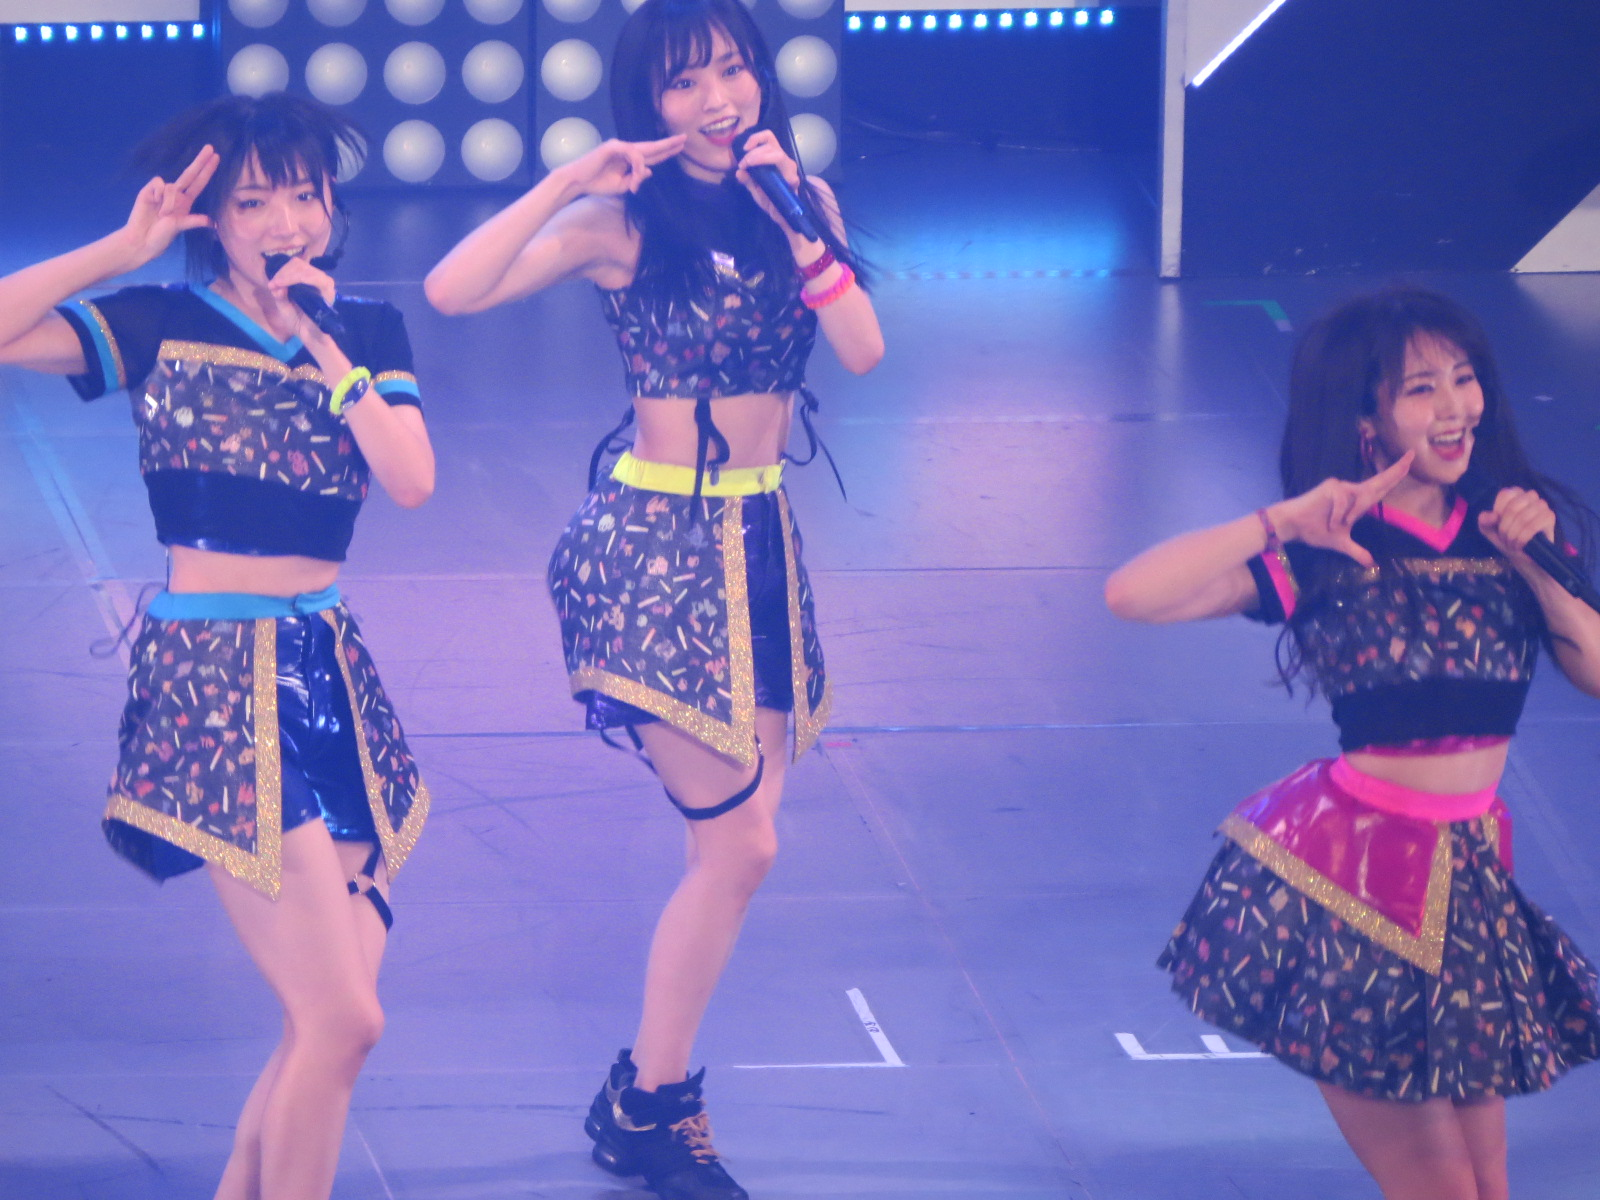 NMB48 LIVE TOUR 2018 in Summer・石川公演の画像-082